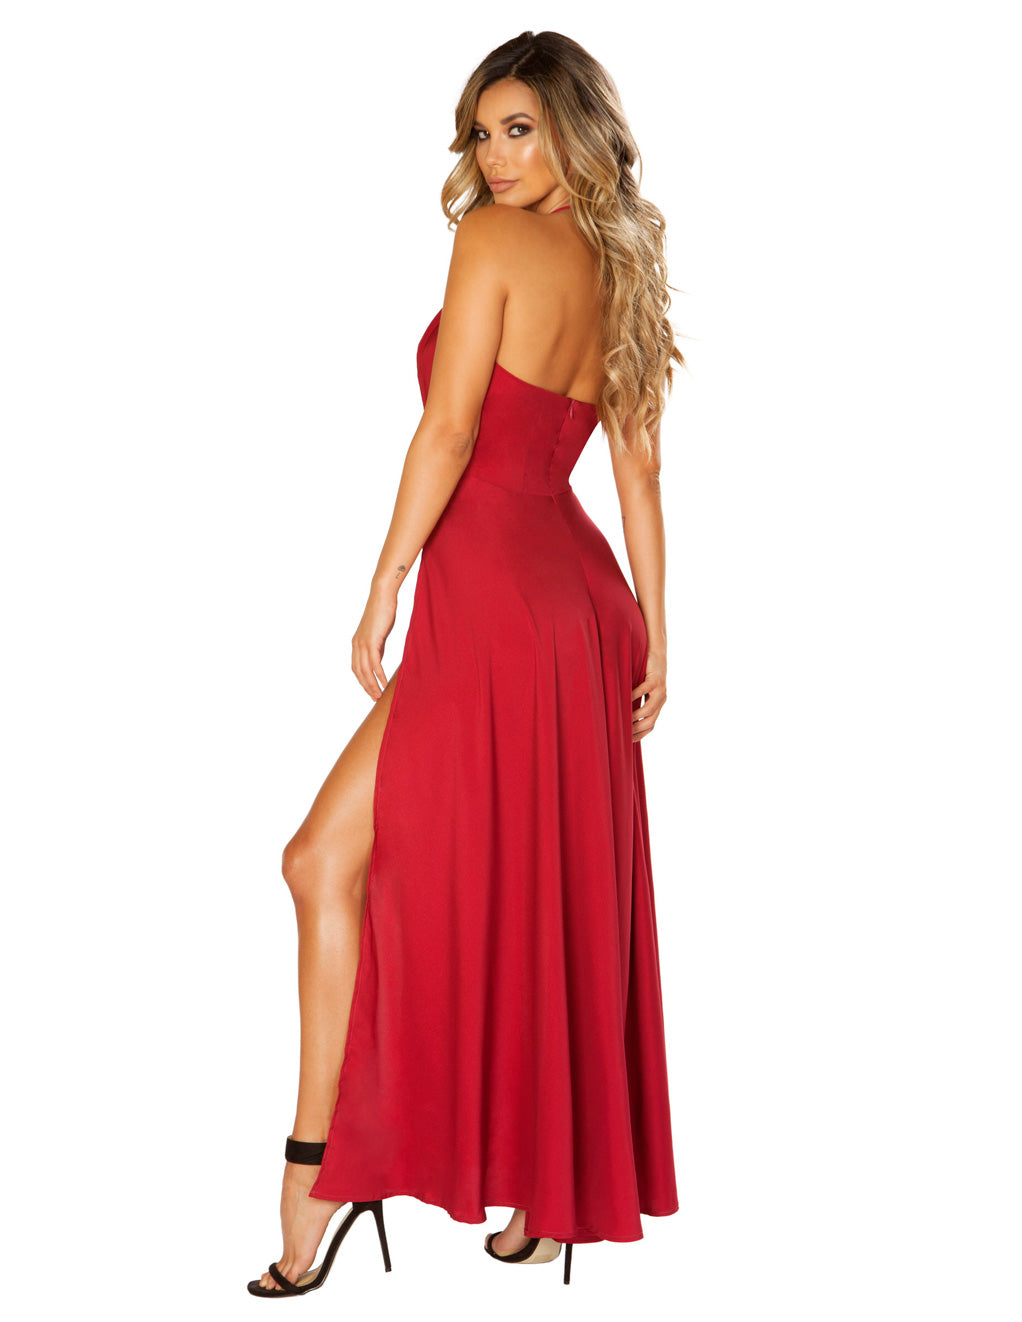 Roma Costume Maxi Length Satin Dress with High Slits And Deep V back